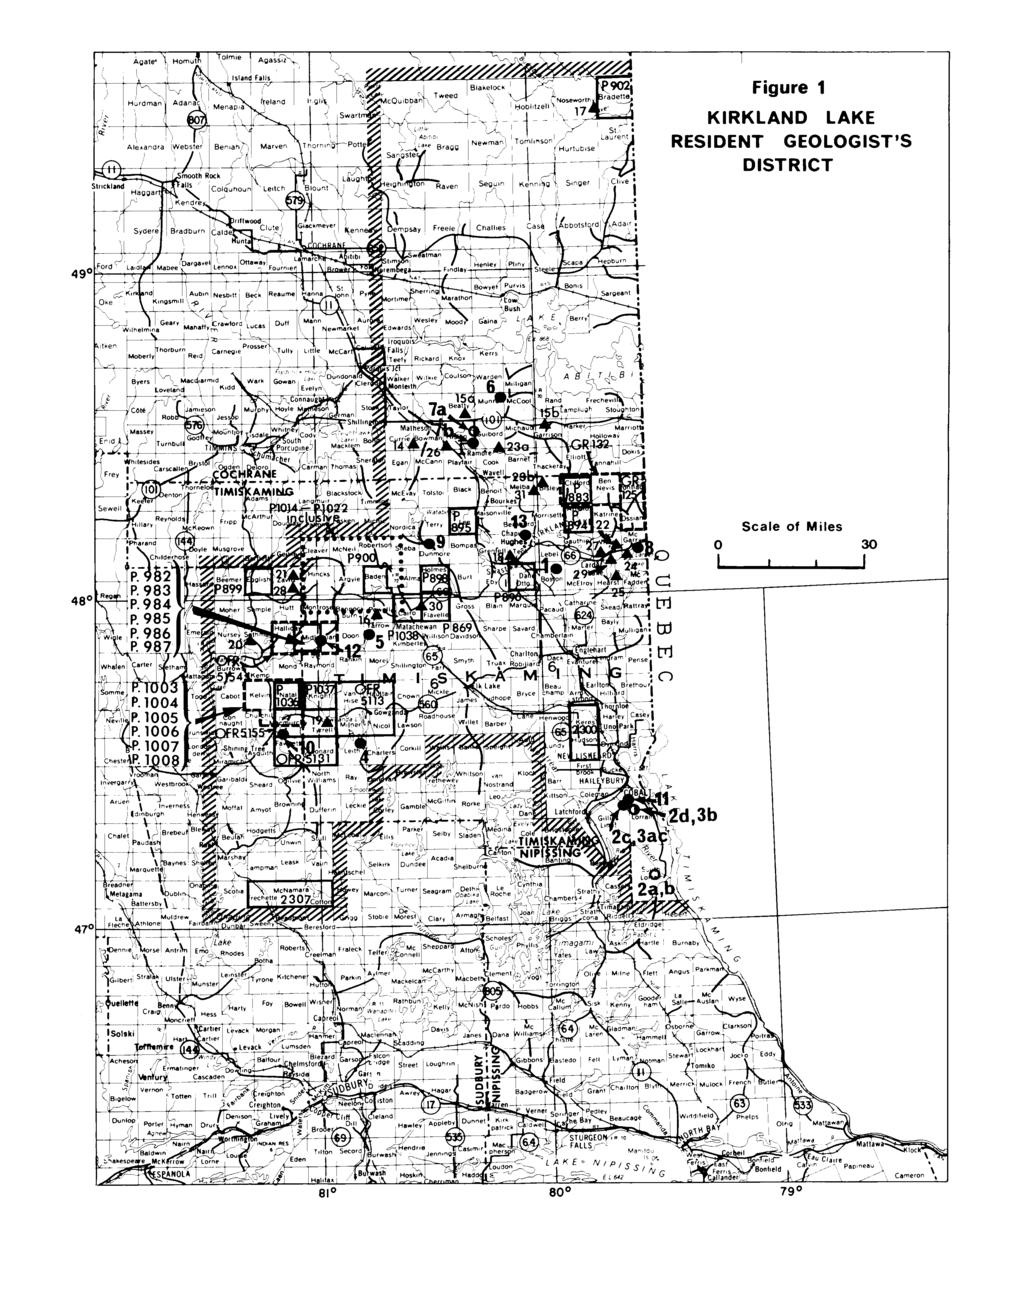 Figure 1 KIRKLAND LAKE RESIDENT GEOLOGIST'S DISTRICT CAWIbk ~ rblacksioc^\ ^M^/l Tolstol l B.